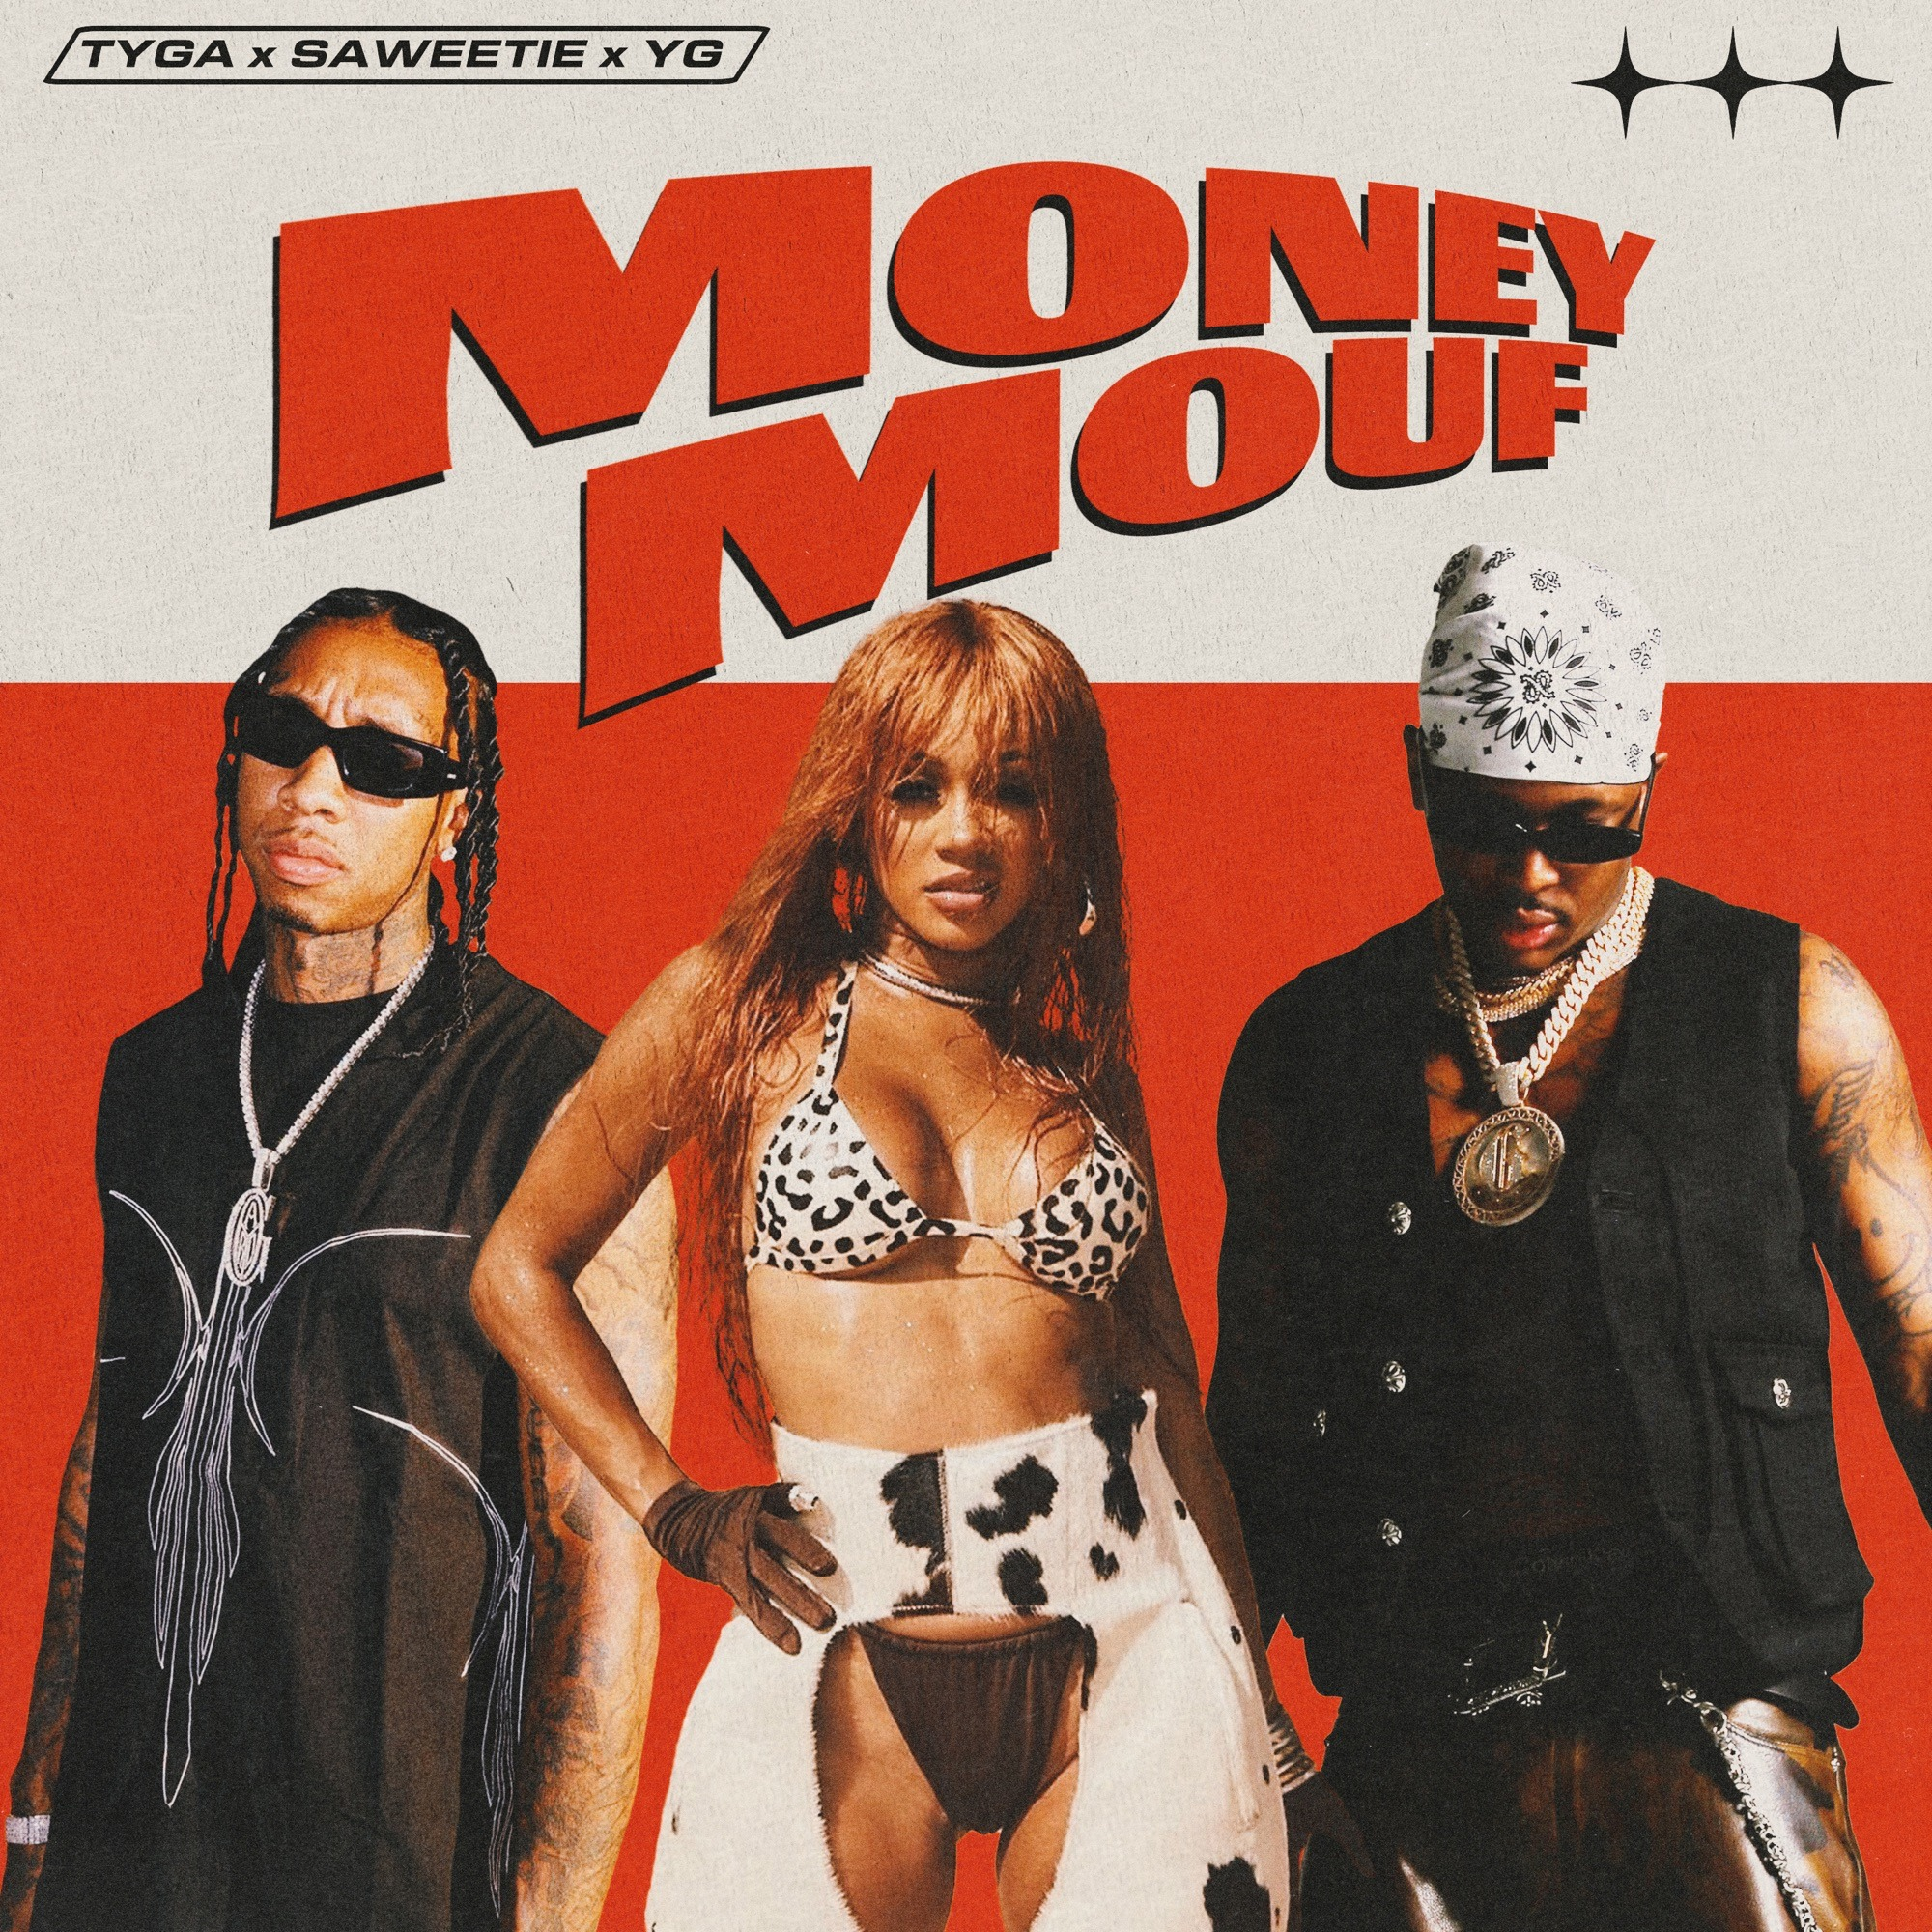 Tyga feat. Saweetie & YG - Money Mouf